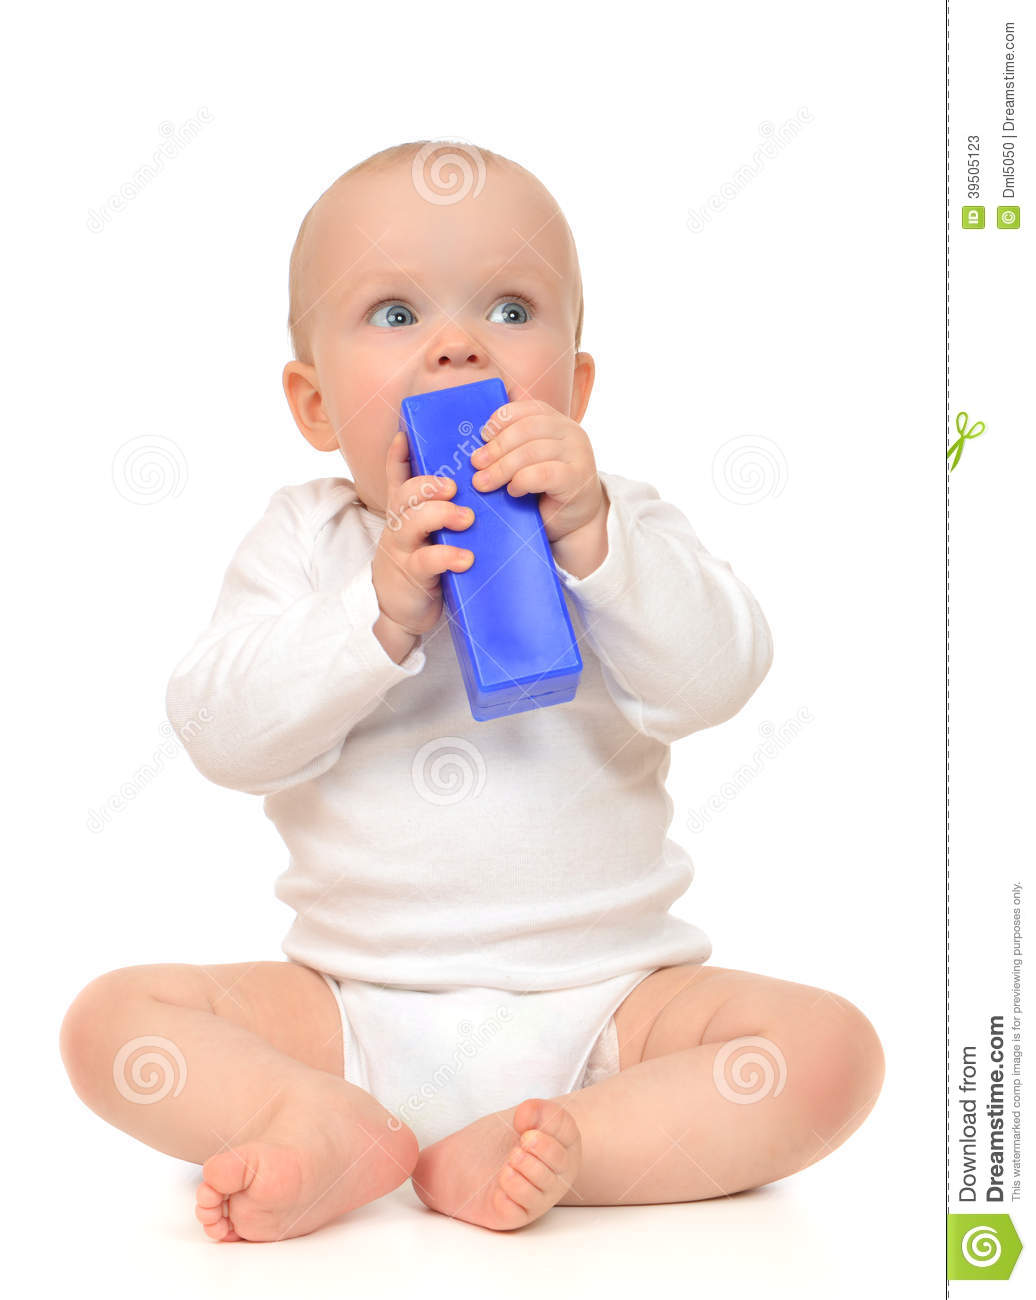 Cute child baby girl toddler sitting and eating blue toy brick